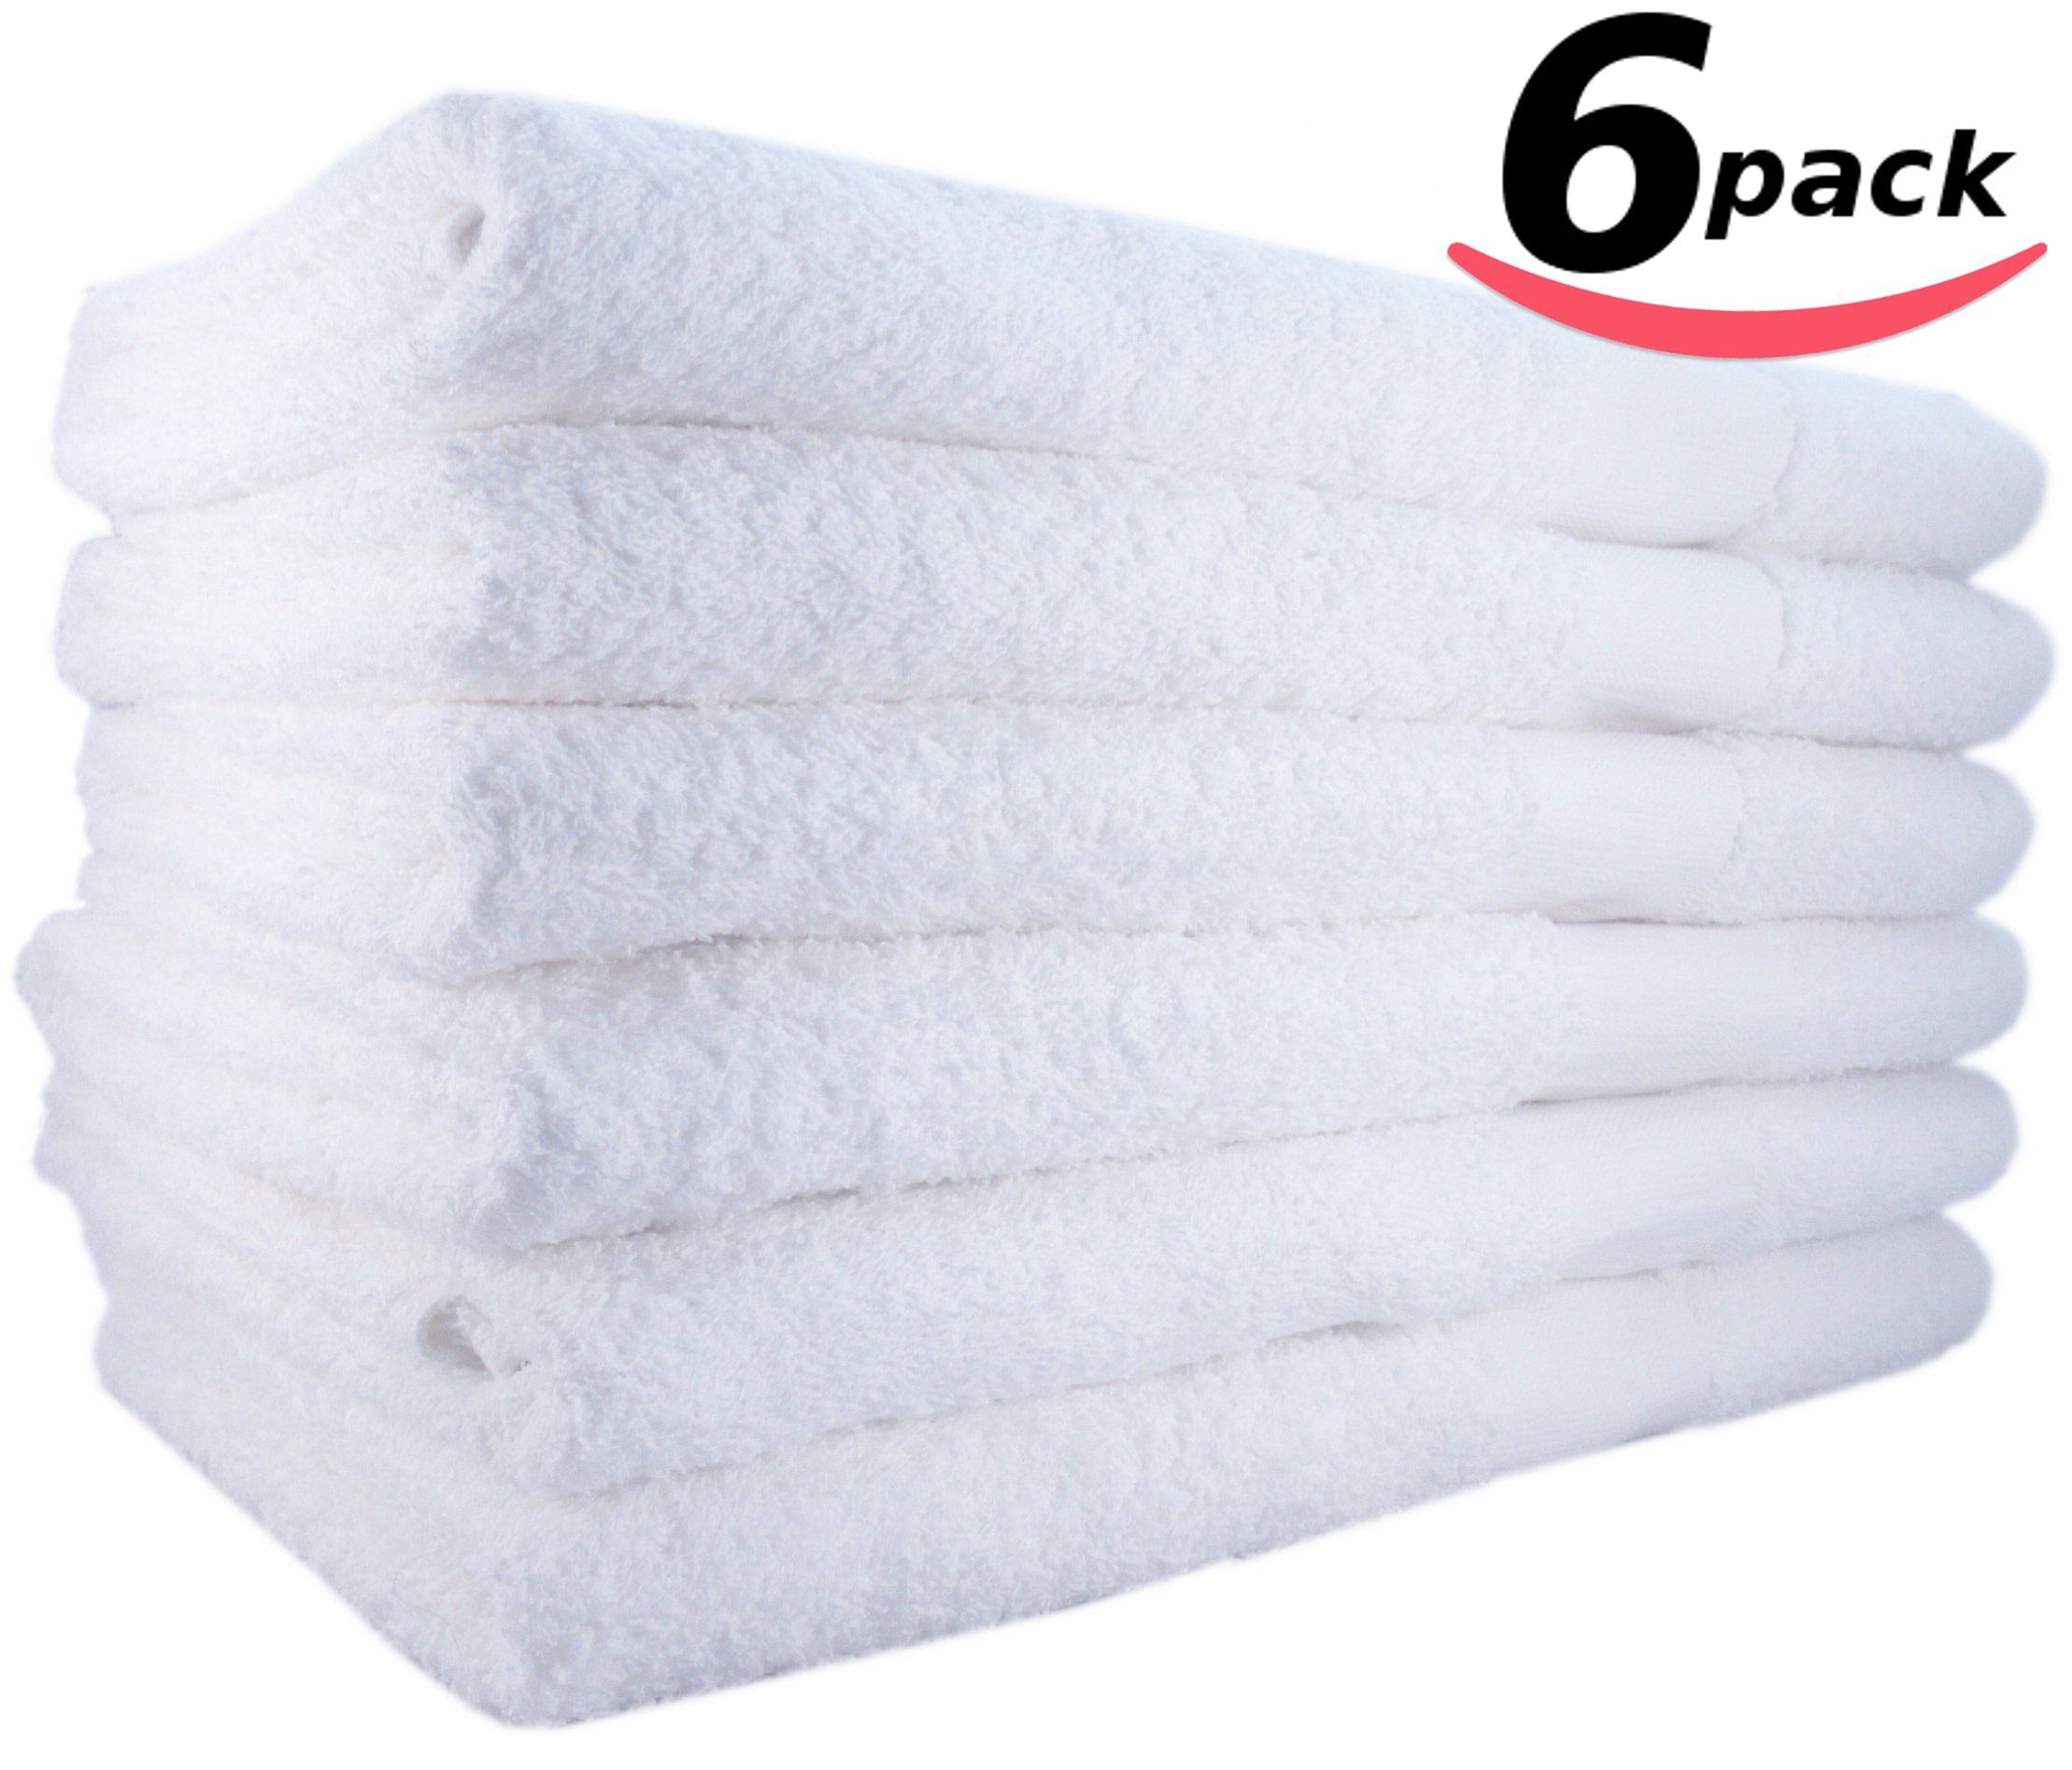 HotelSpaPoolGym Cotton Hair & Bath Towel 6 Pack